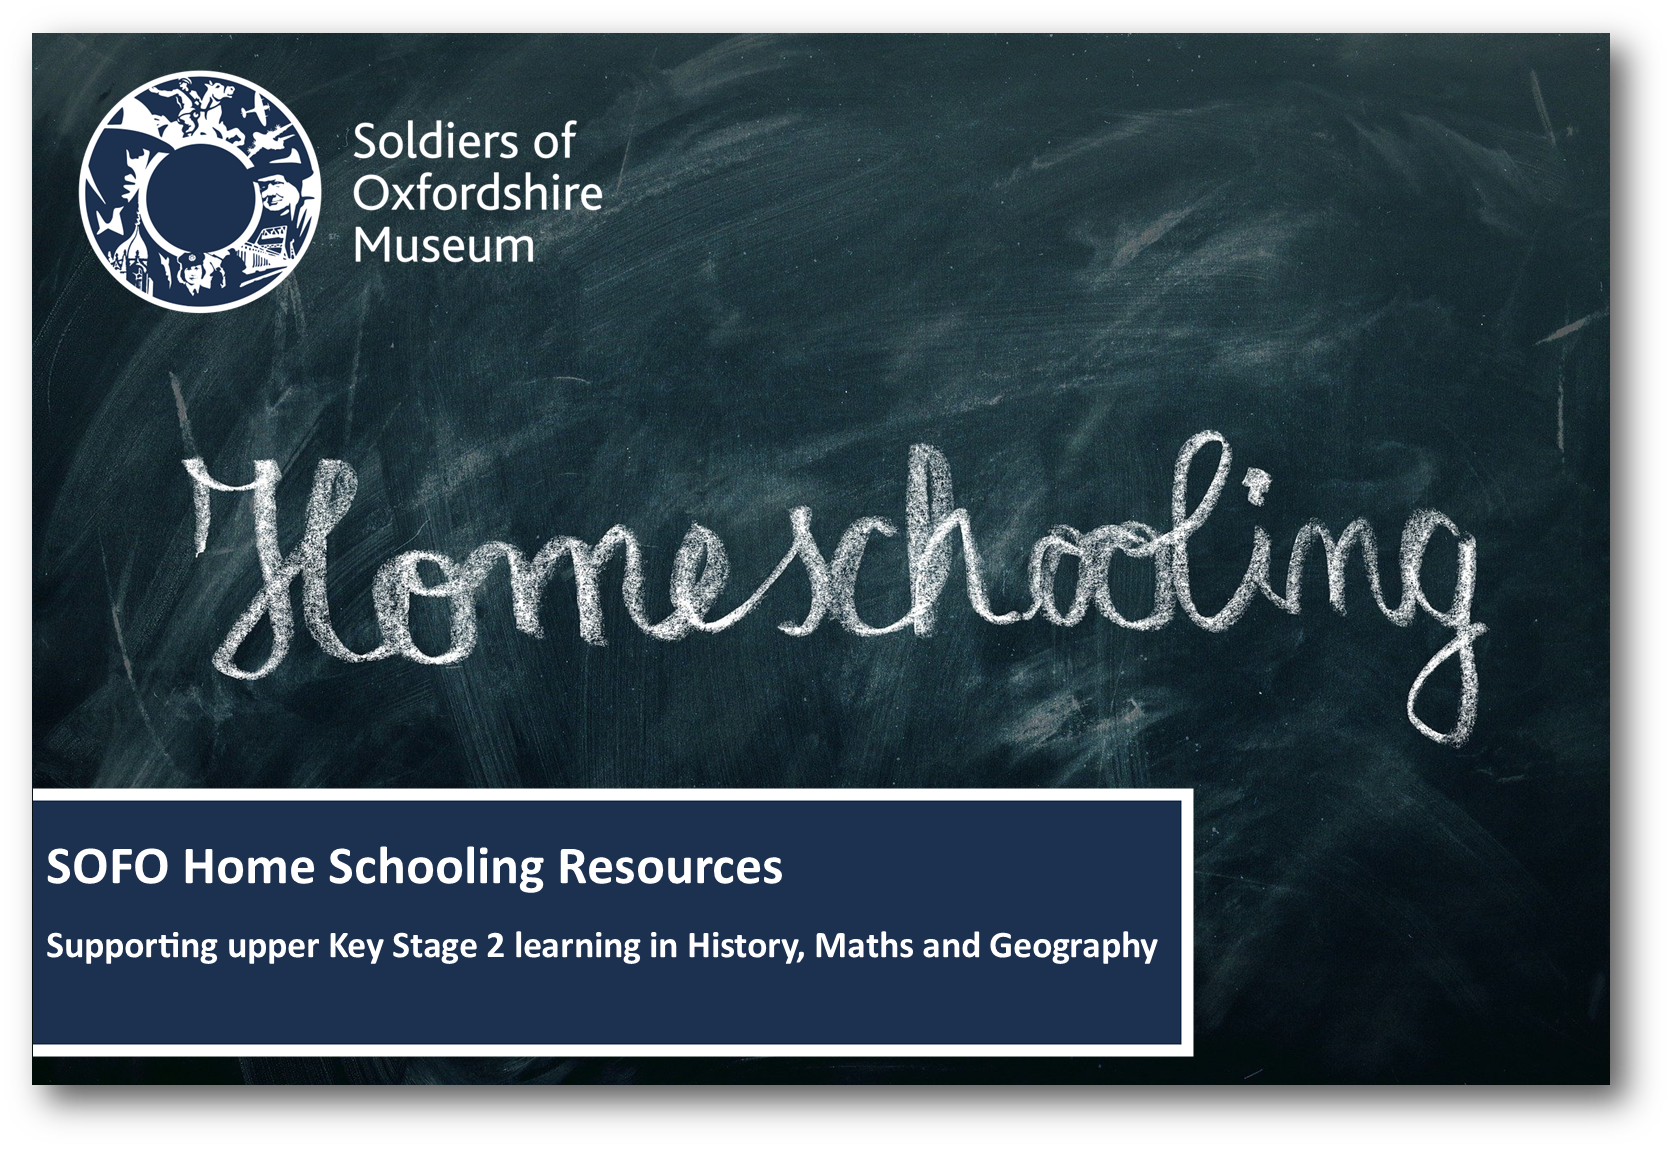 Home School Resources supporting upper key stage 2 History, Maths and Geography